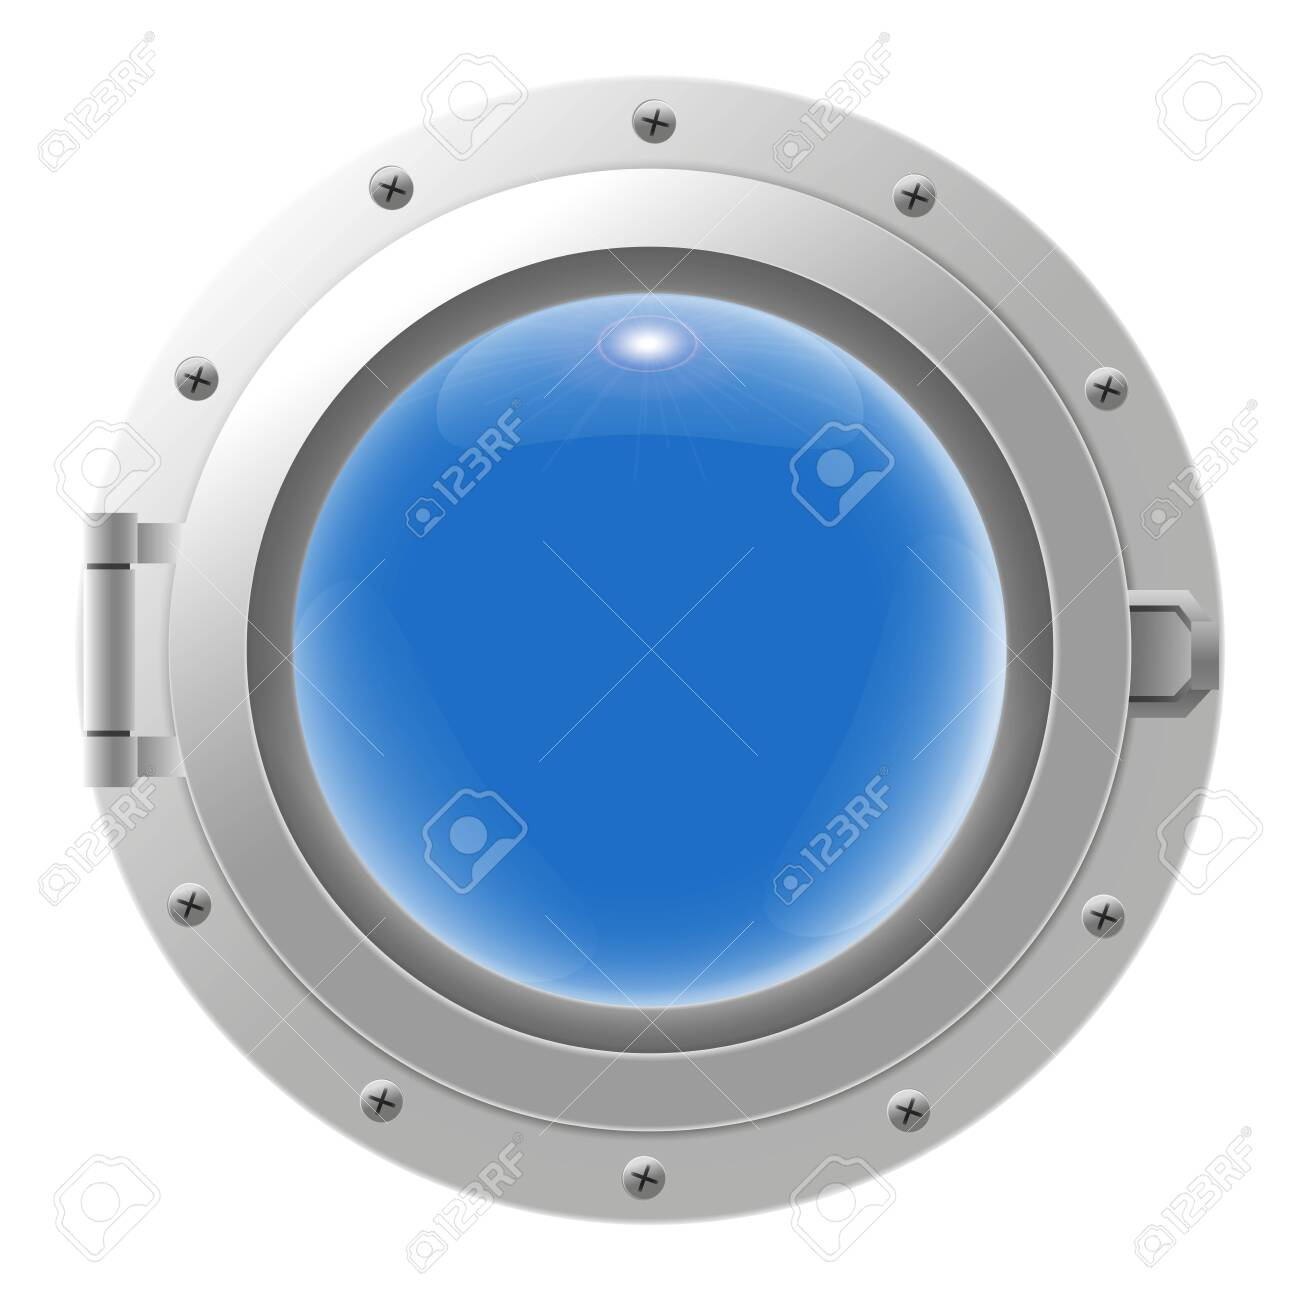 Metal ship porthole with glass isolated on transparent background. Rivets mount. Vector illustration - 140002367